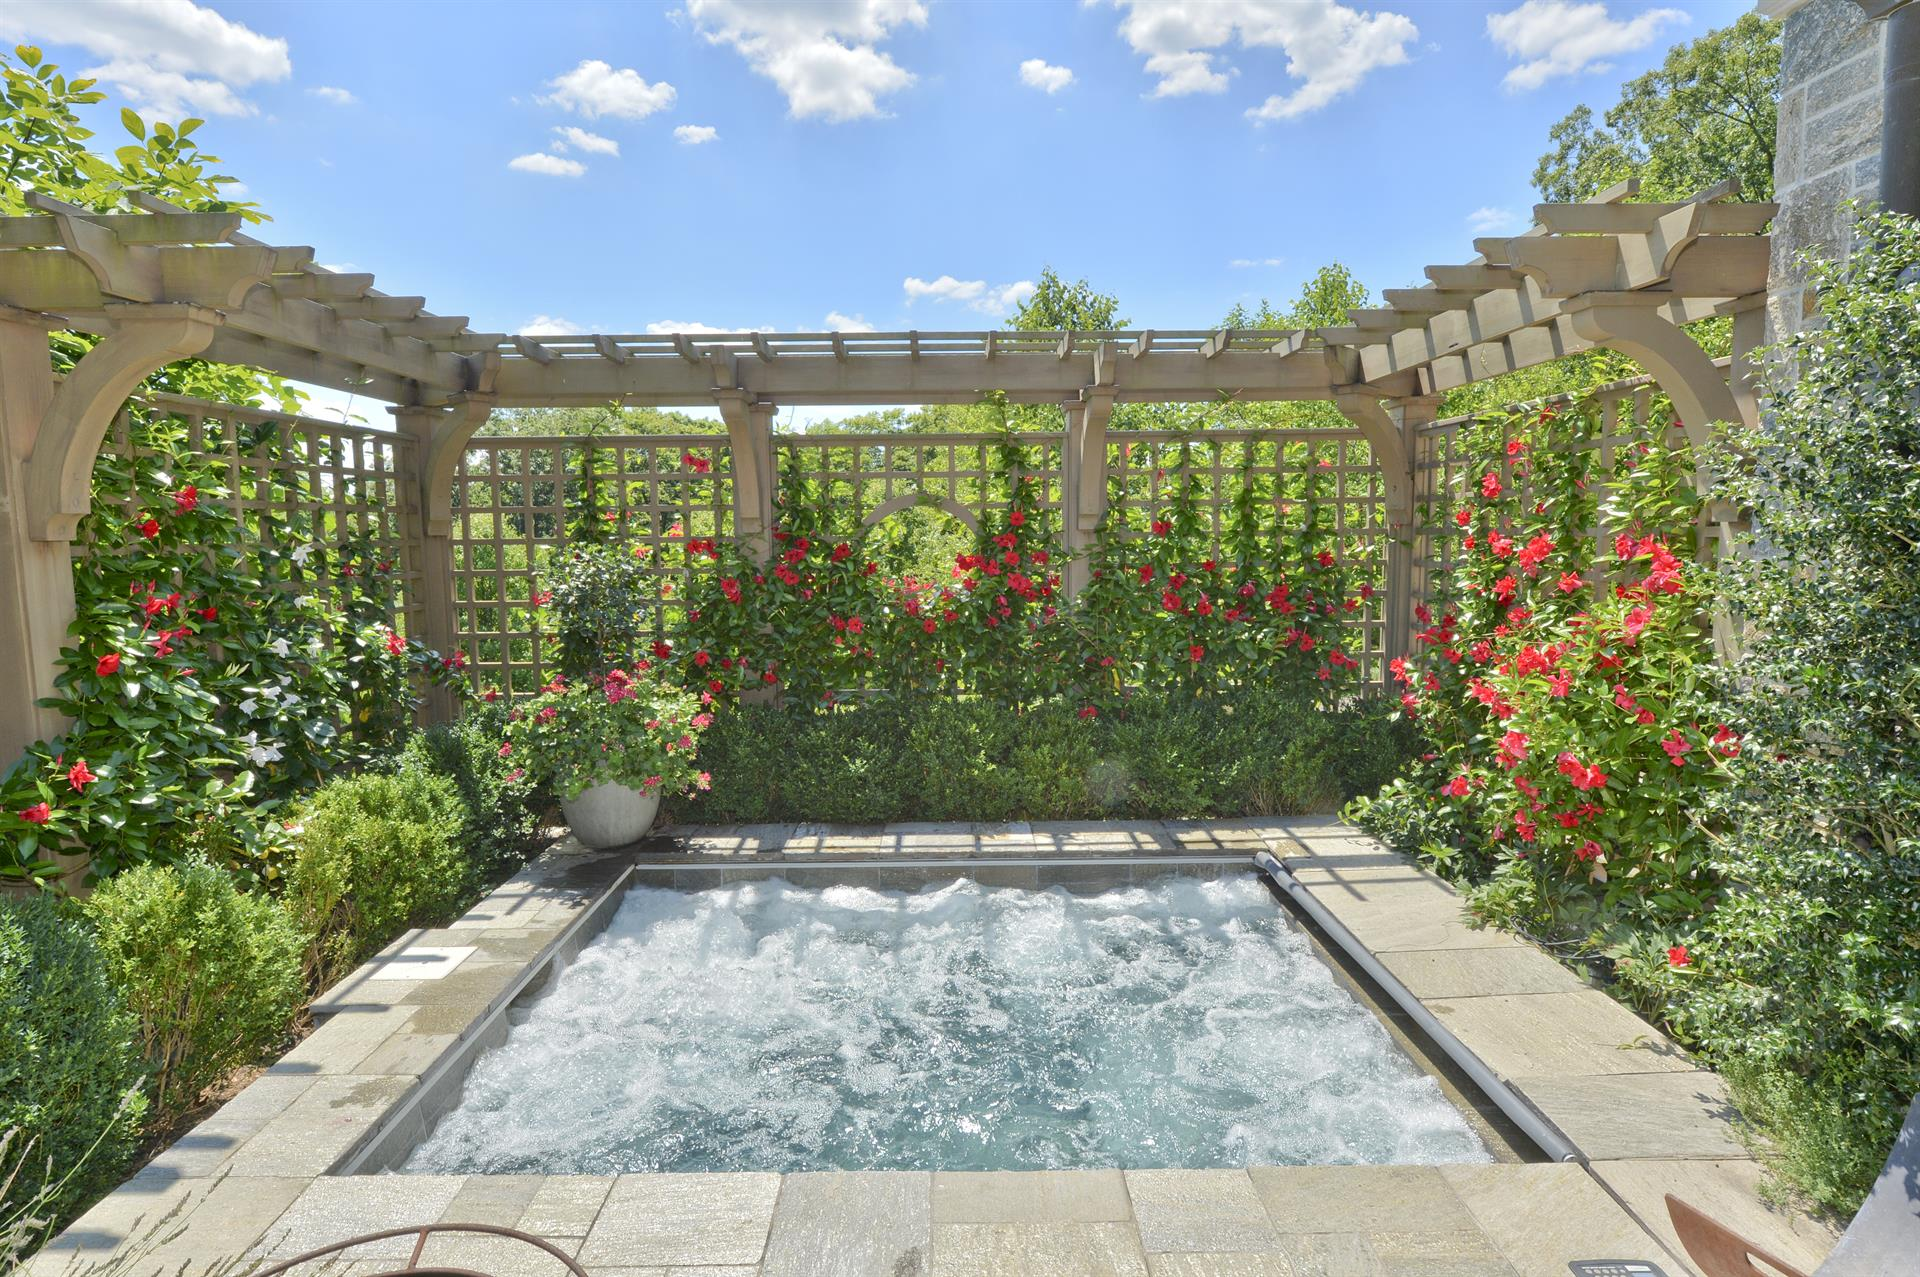 46 Acre Recreational Family compound within 30 minutes of New York ...